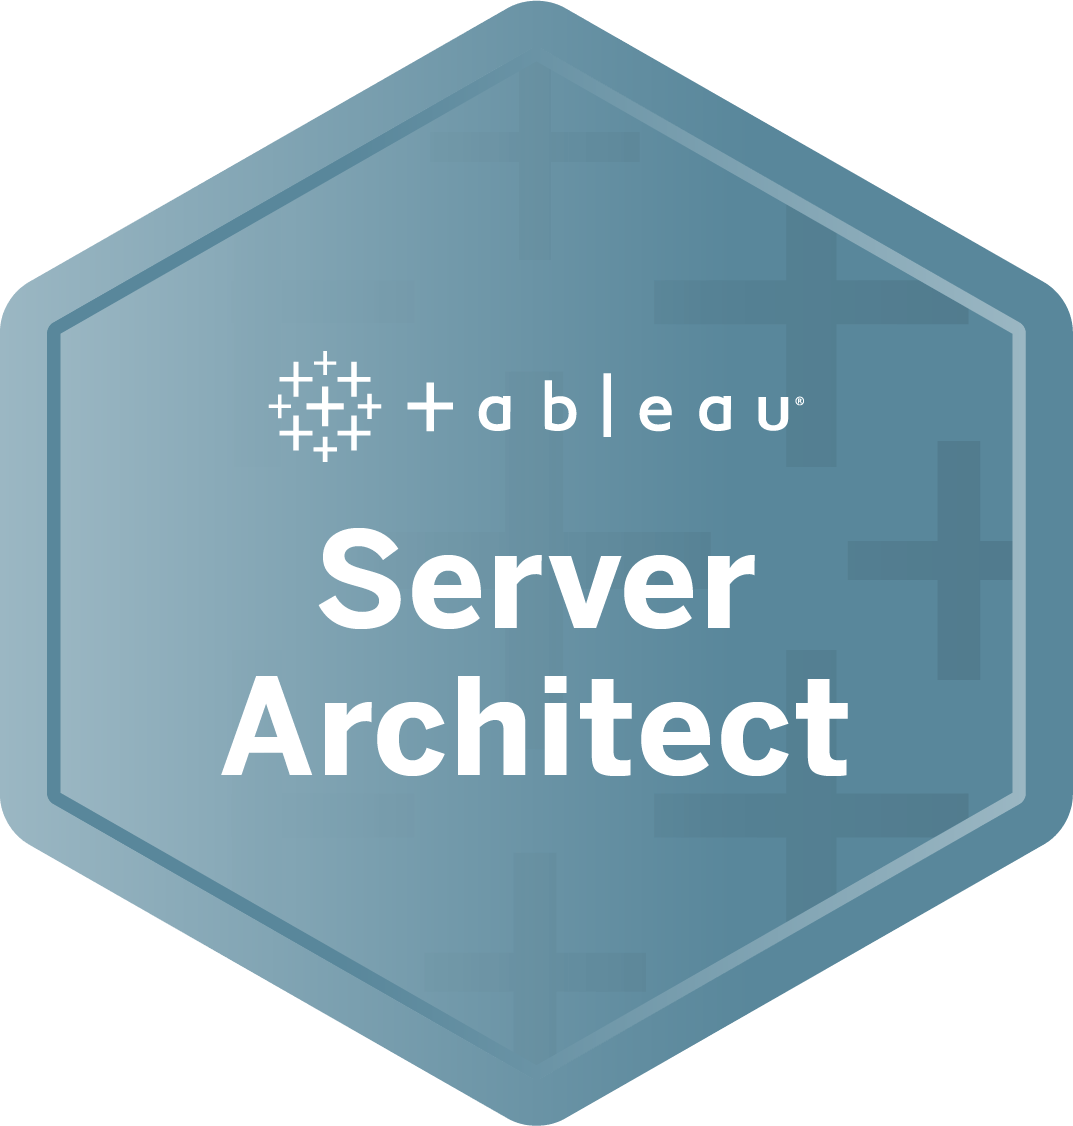 Server Architect badge